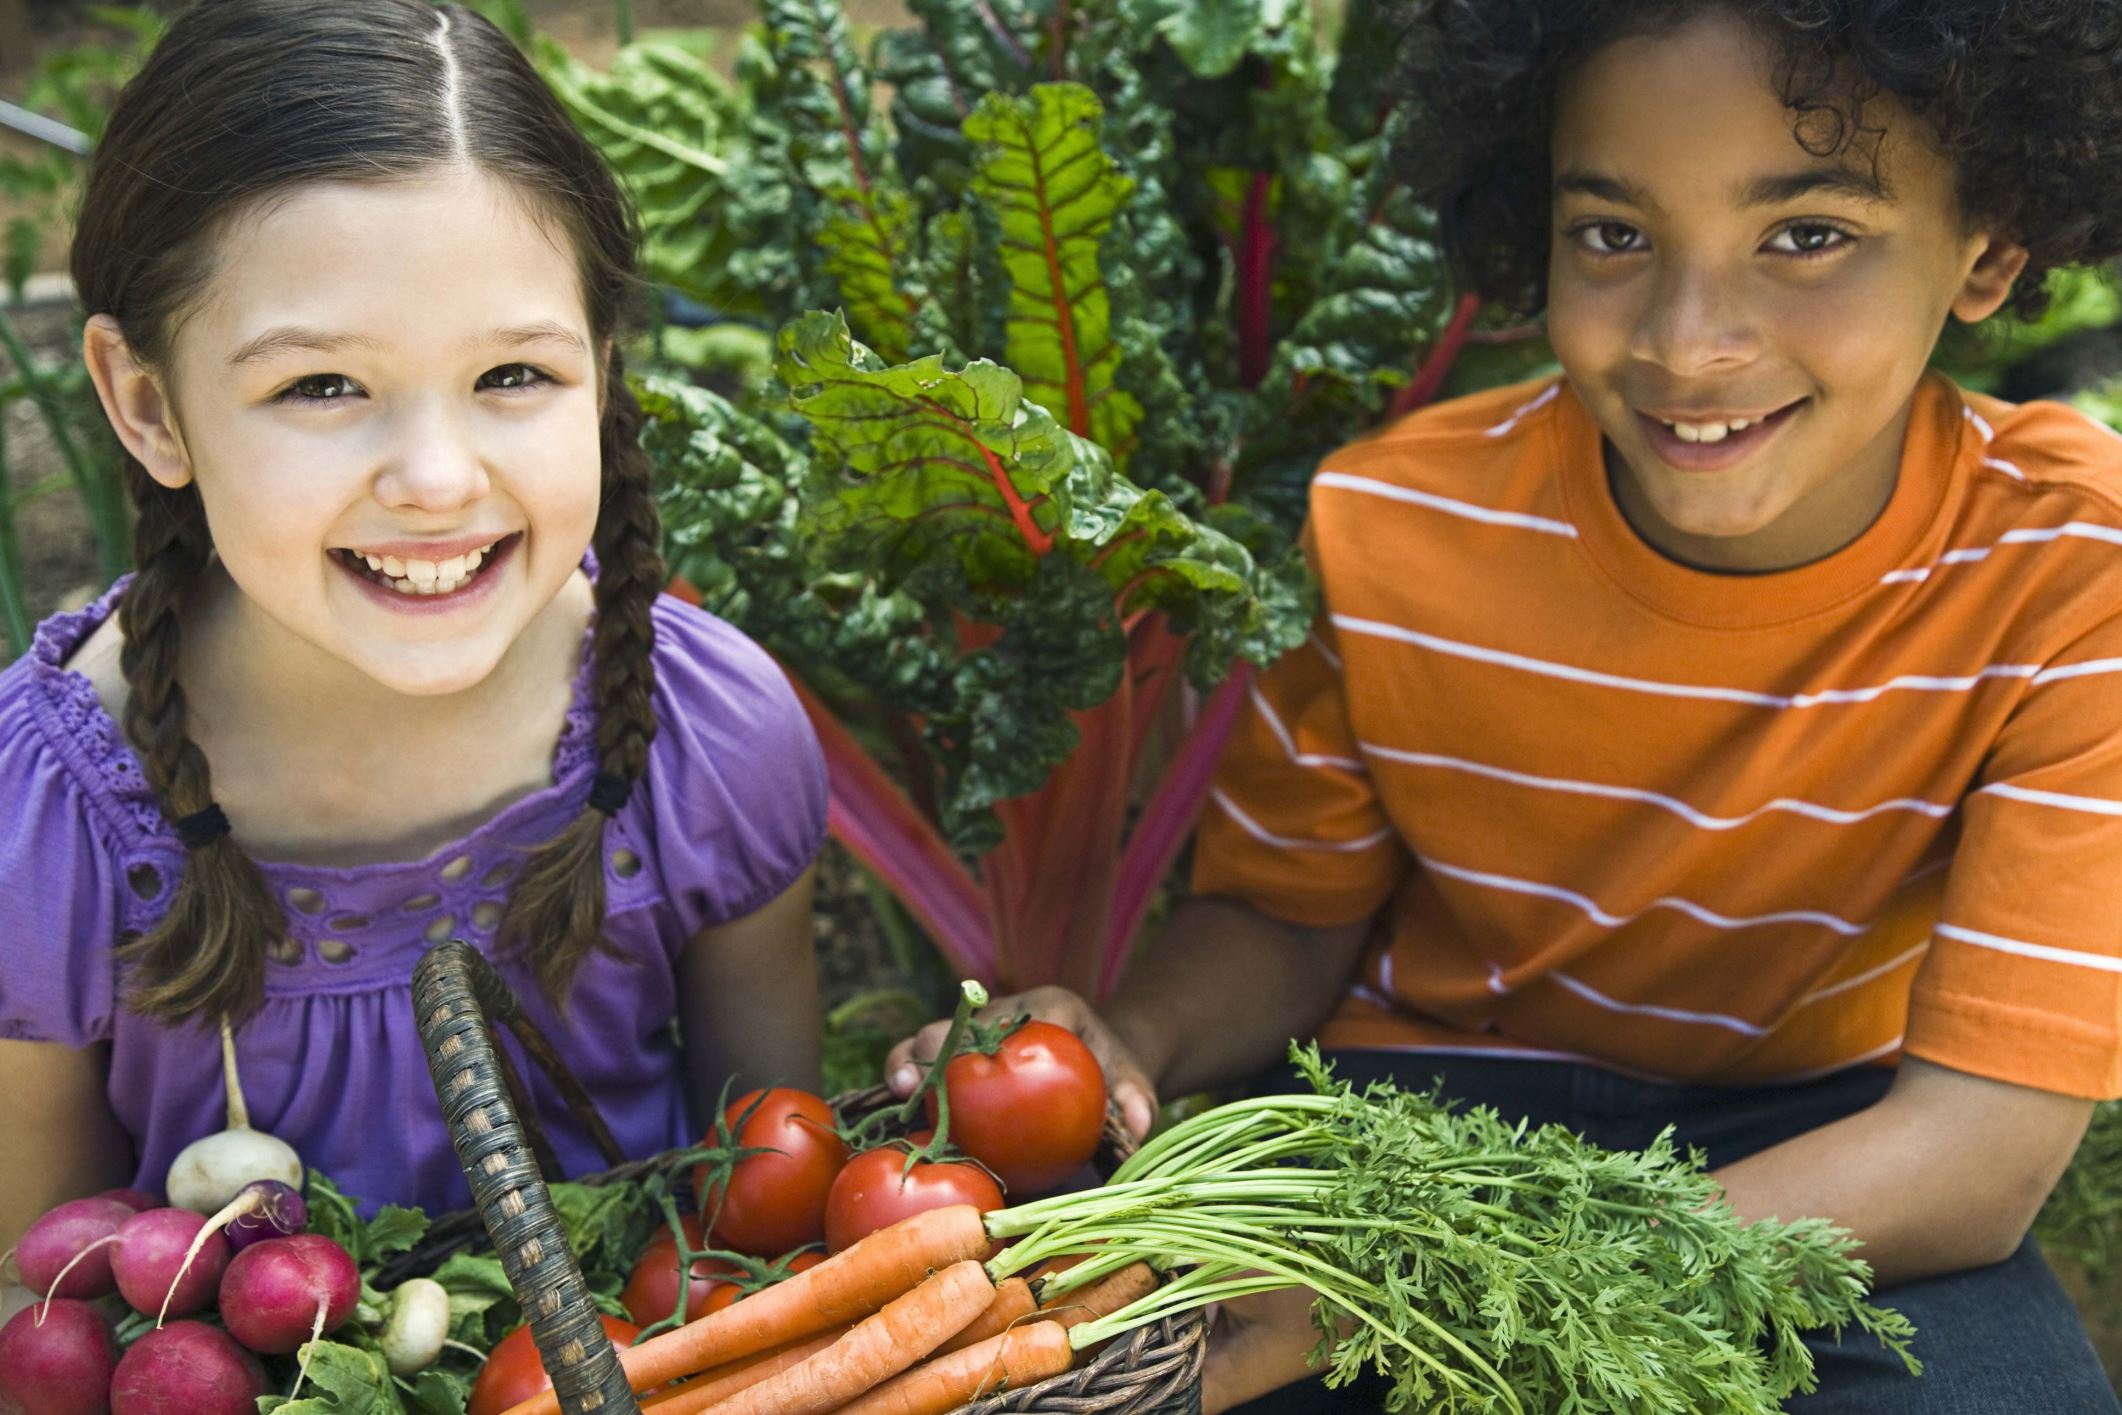 Kids and veggies